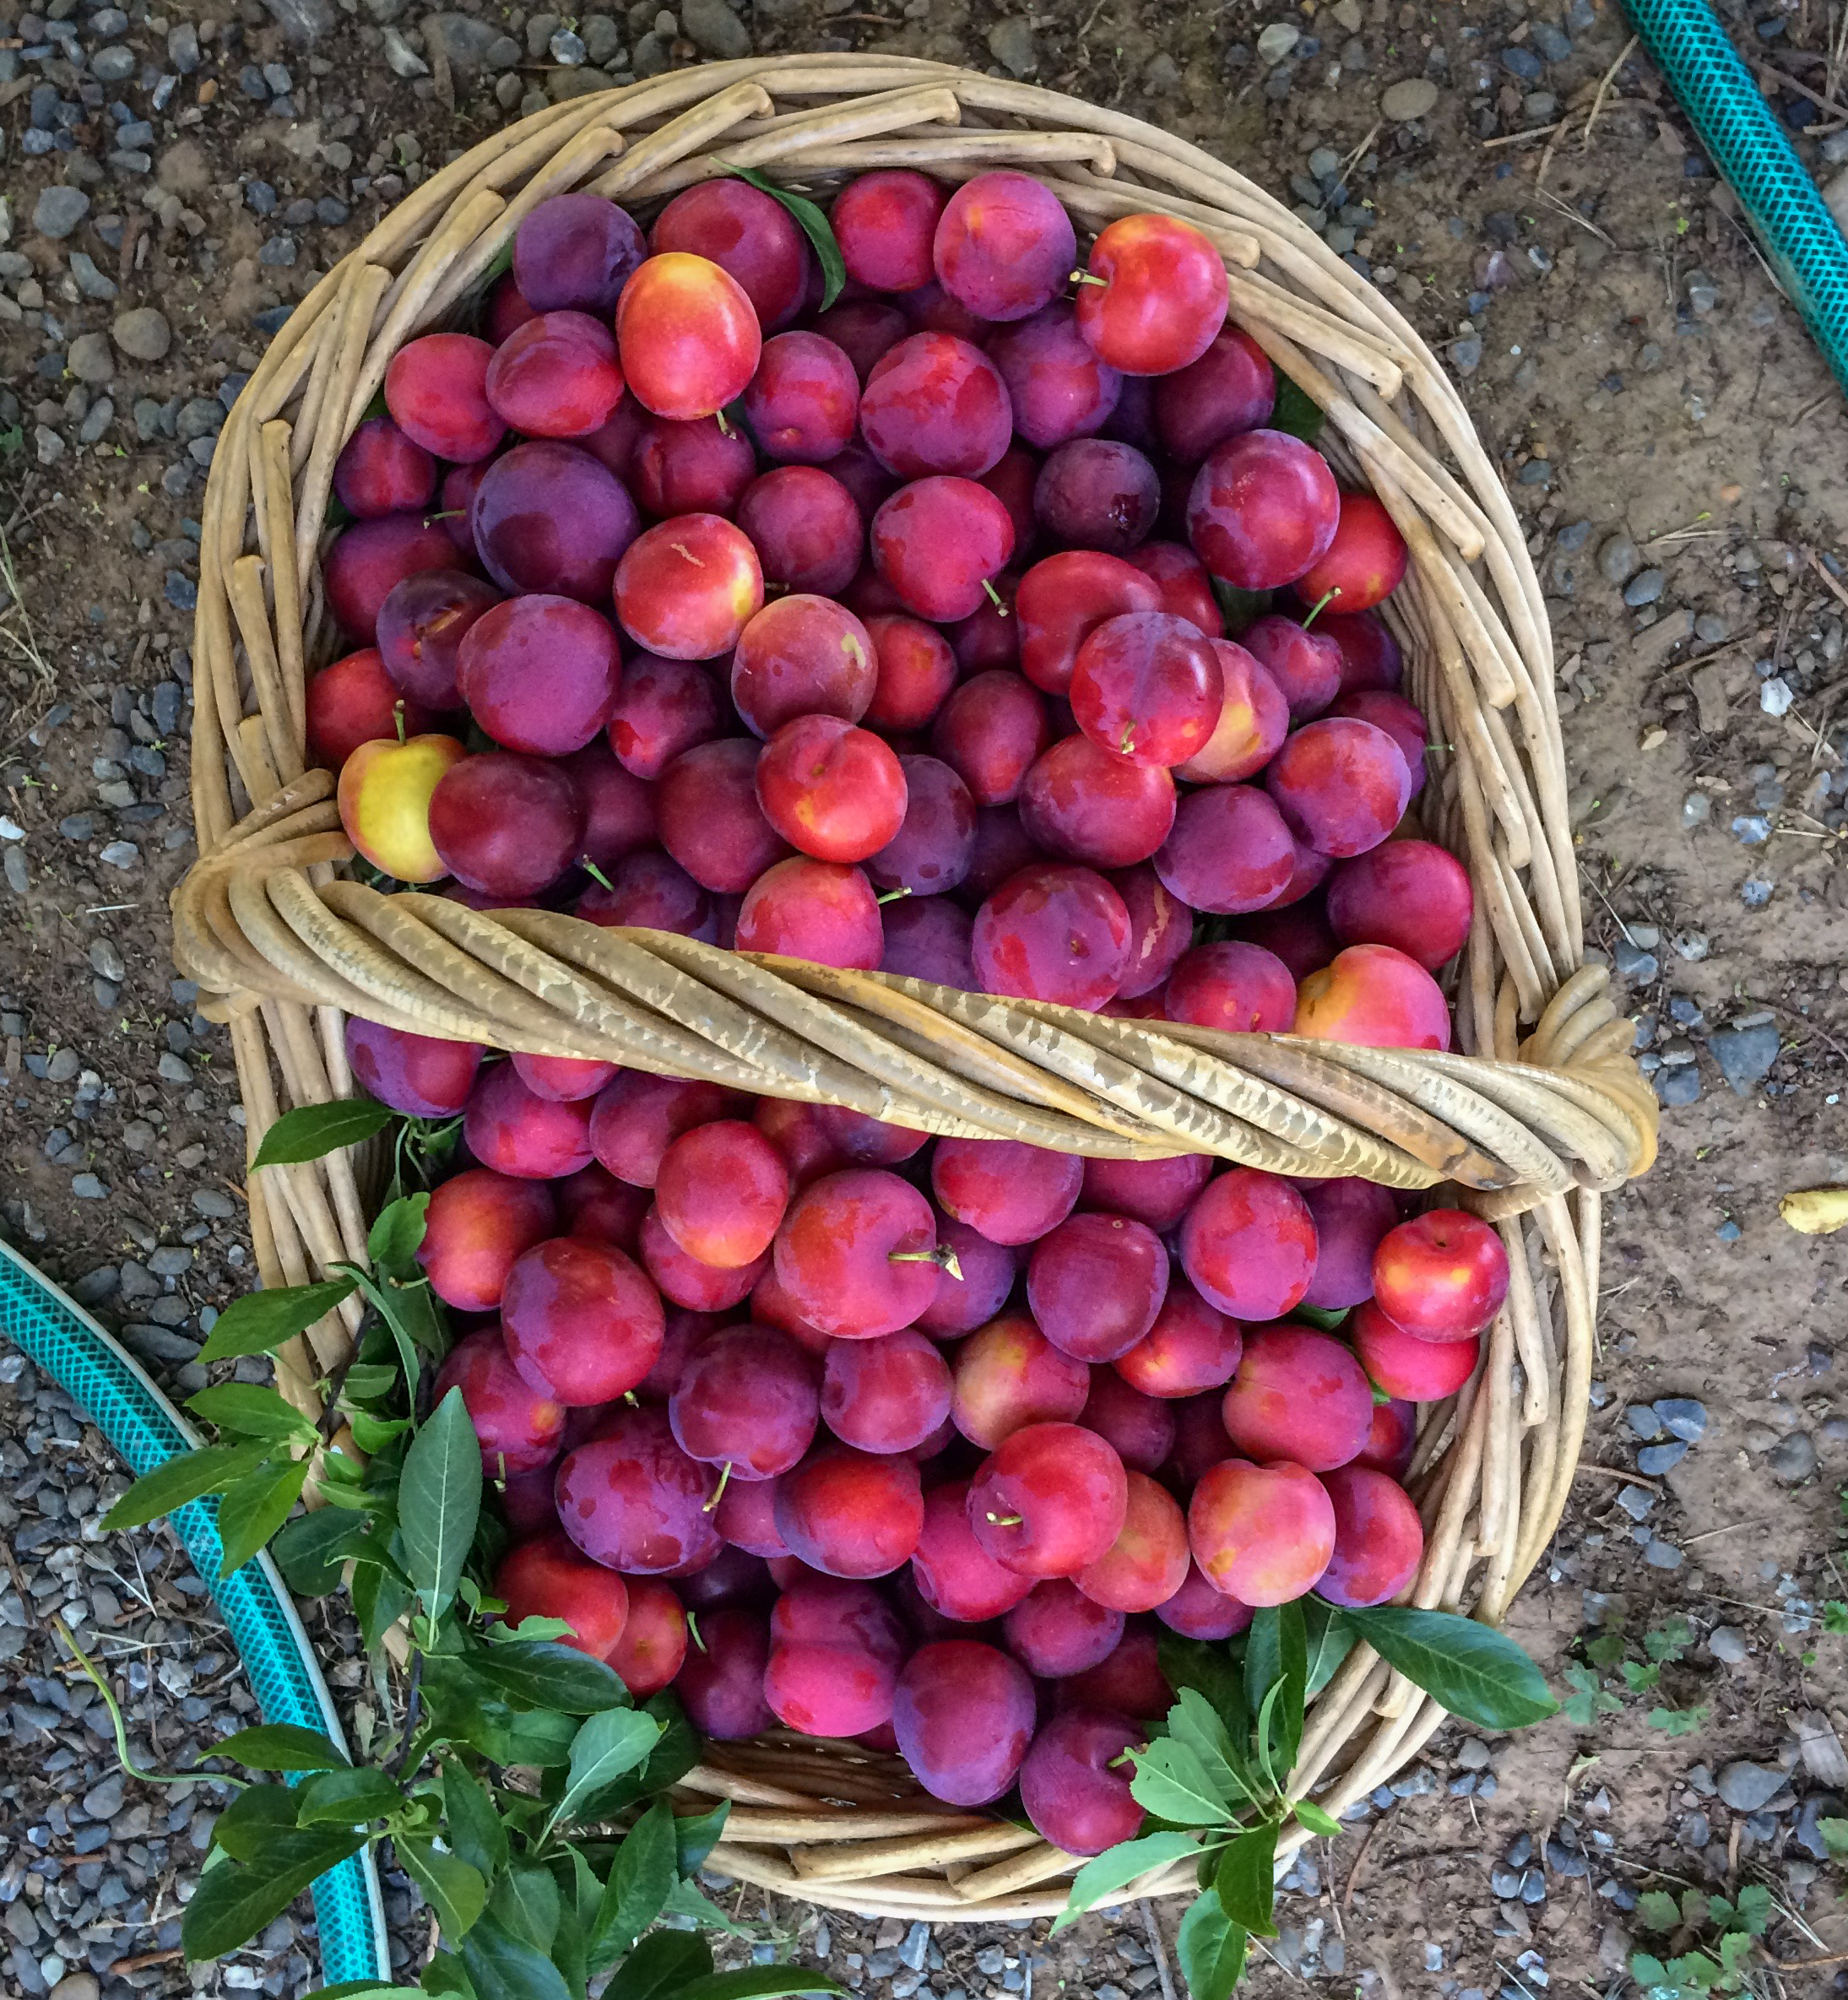 First up: Beauty Plums.To be followed by Laredo Sweet Purple, Pluot Greens, French Prunes